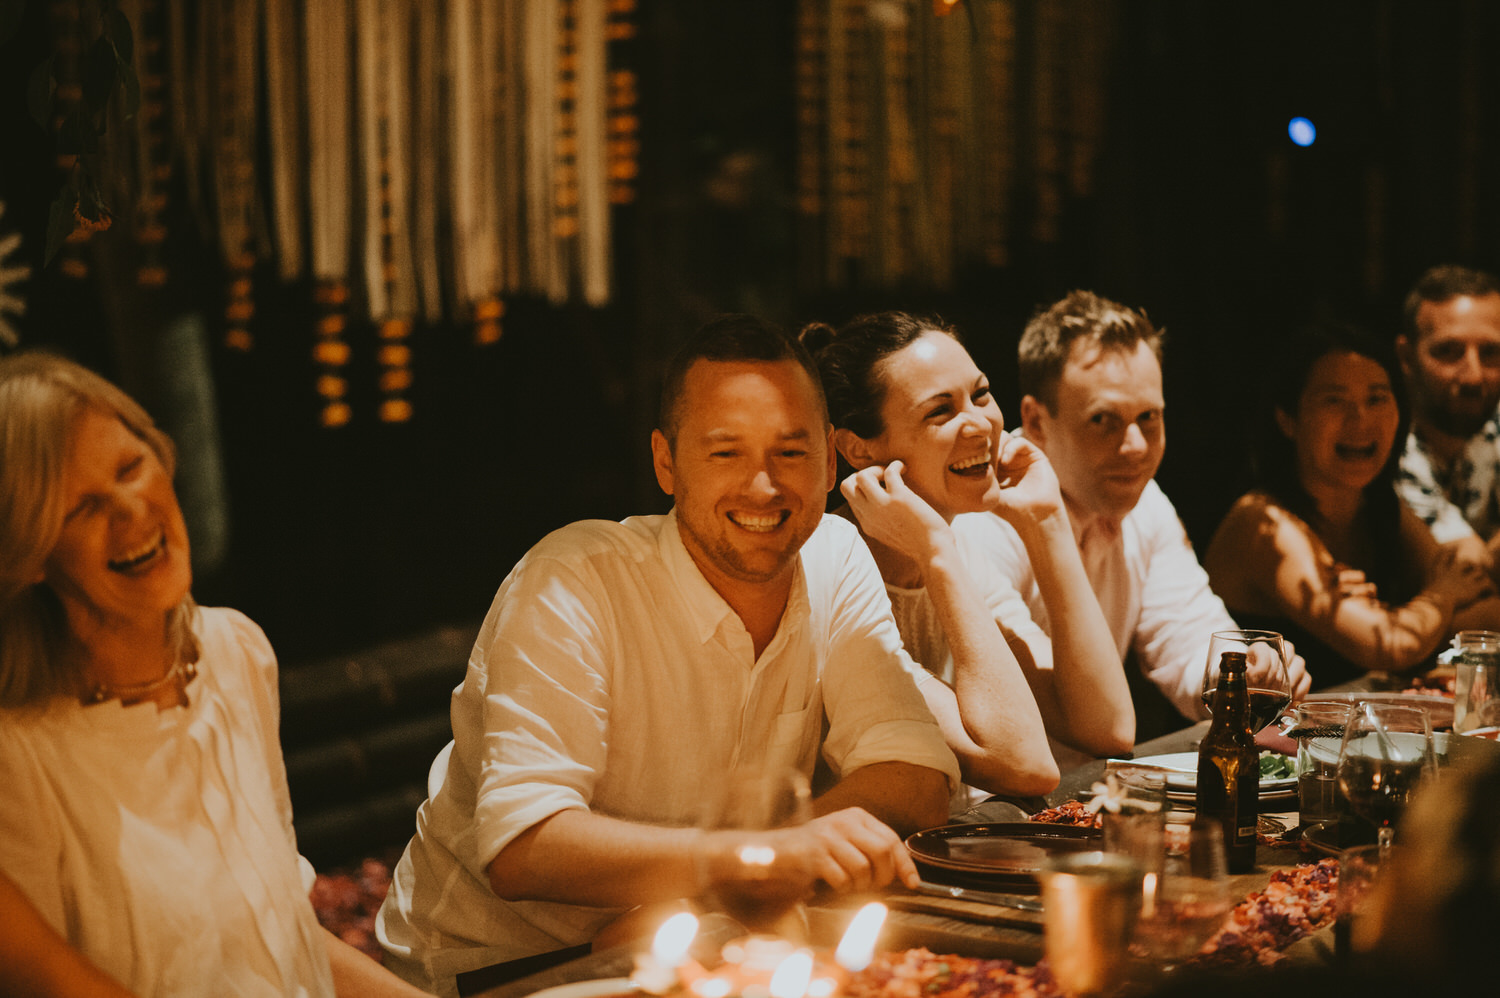 bali-wedding-ubud-wedding-wedding-destination-diktatphotography-kadek-artayasa-elaine-and-glenn-139